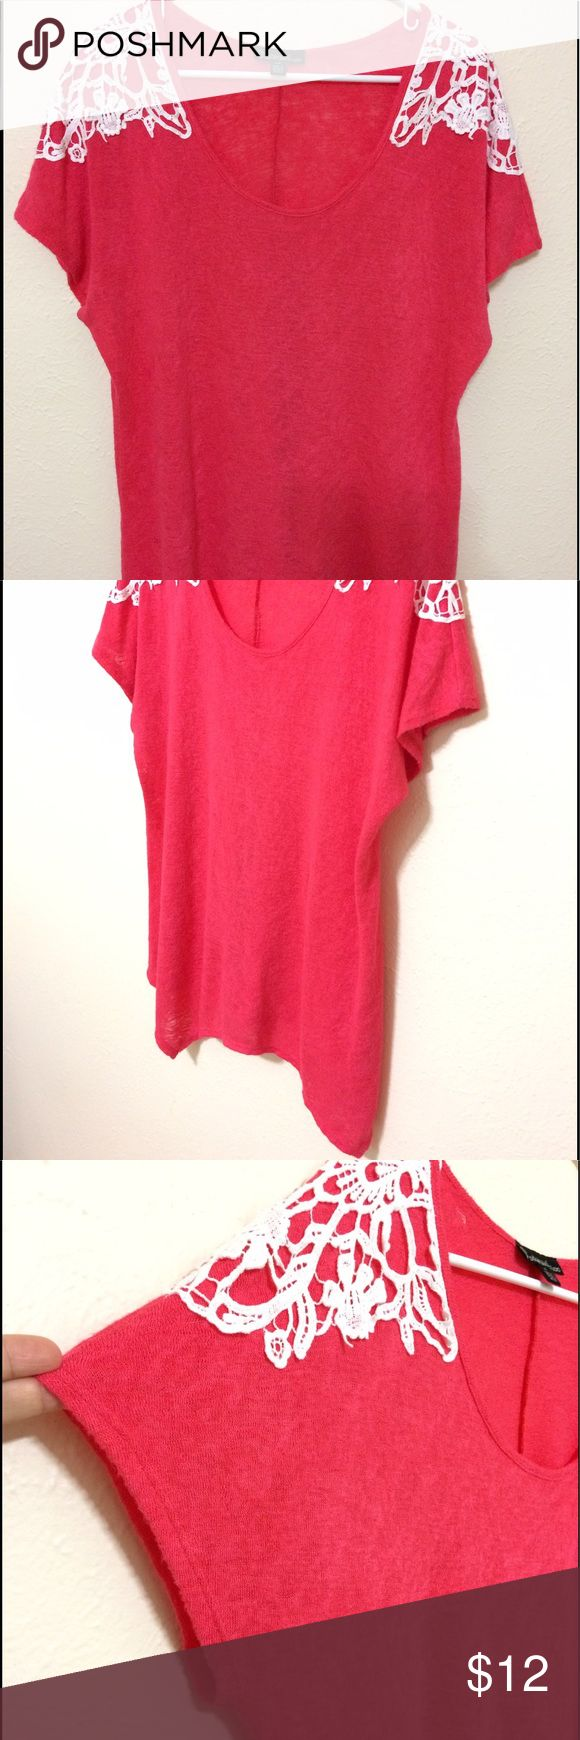 Hot pink t-shirt Light and flowy hot pink shirt. Has very beautiful white floral designs on each shoulder. Very thin and airy feel. Slightly see through but I never had to wear an undershirt with it. Pet free and smoke free home. Tops Tees - Short Sleeve